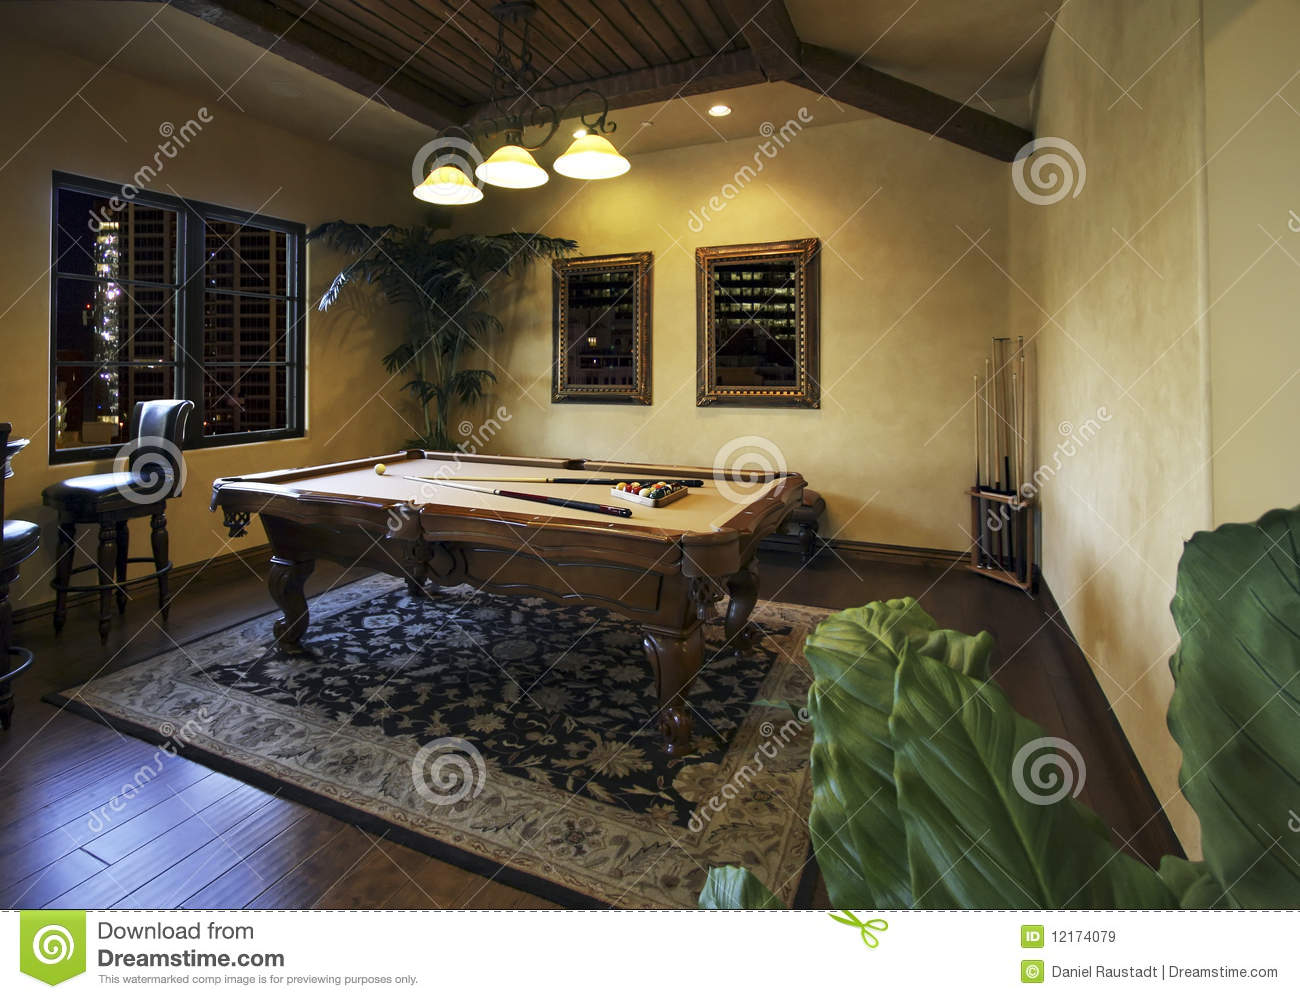 Billiards Game Room After Dark Royalty Free Stock Images  Image 12174079